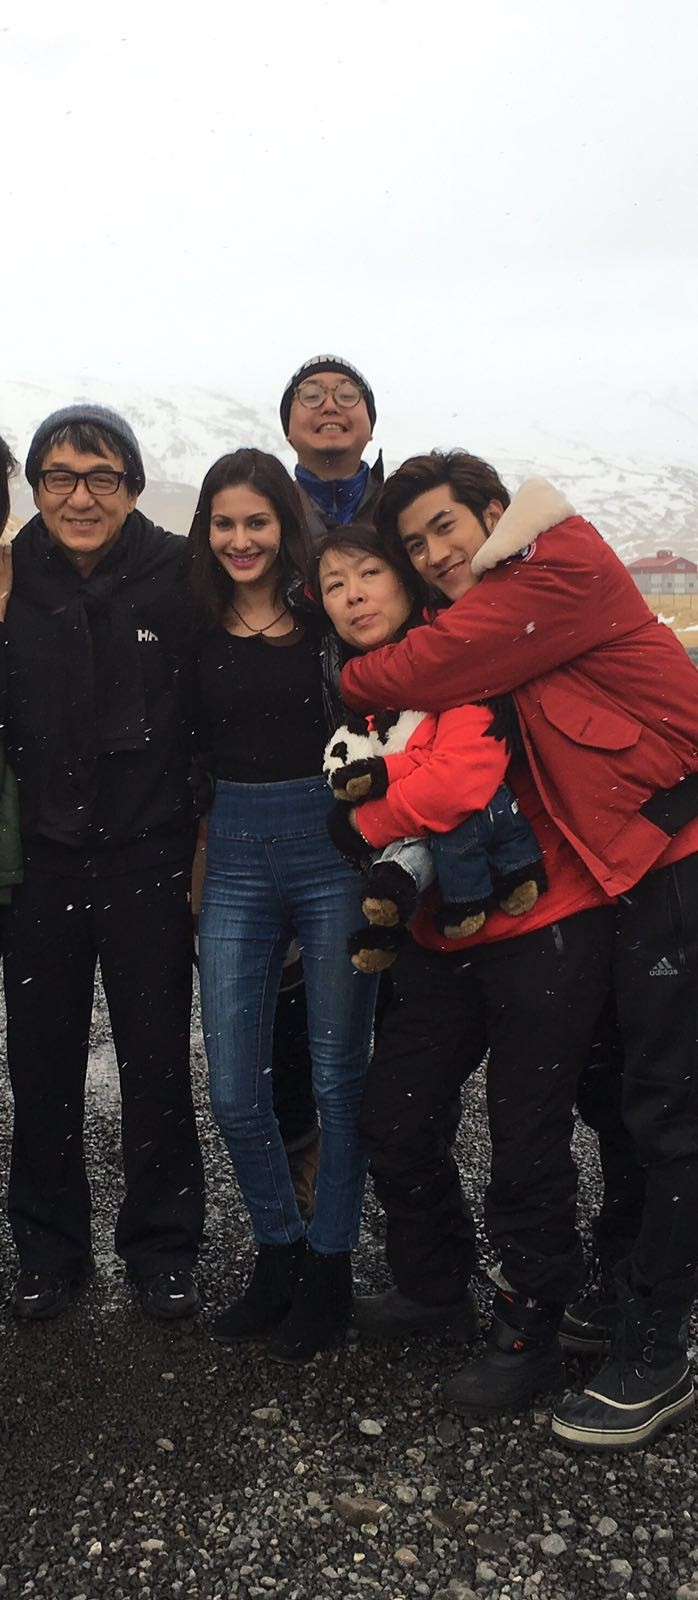 Amyra Dastur,Jackie Chan,Amyra Dastur gets farewell cake from Jackie Chan,Amyra Dastur and Jackie Chan,Amyra Dastur gets farewell,Kung Fu Yoga,actor Jackie Chan,actress Amyra Dastur